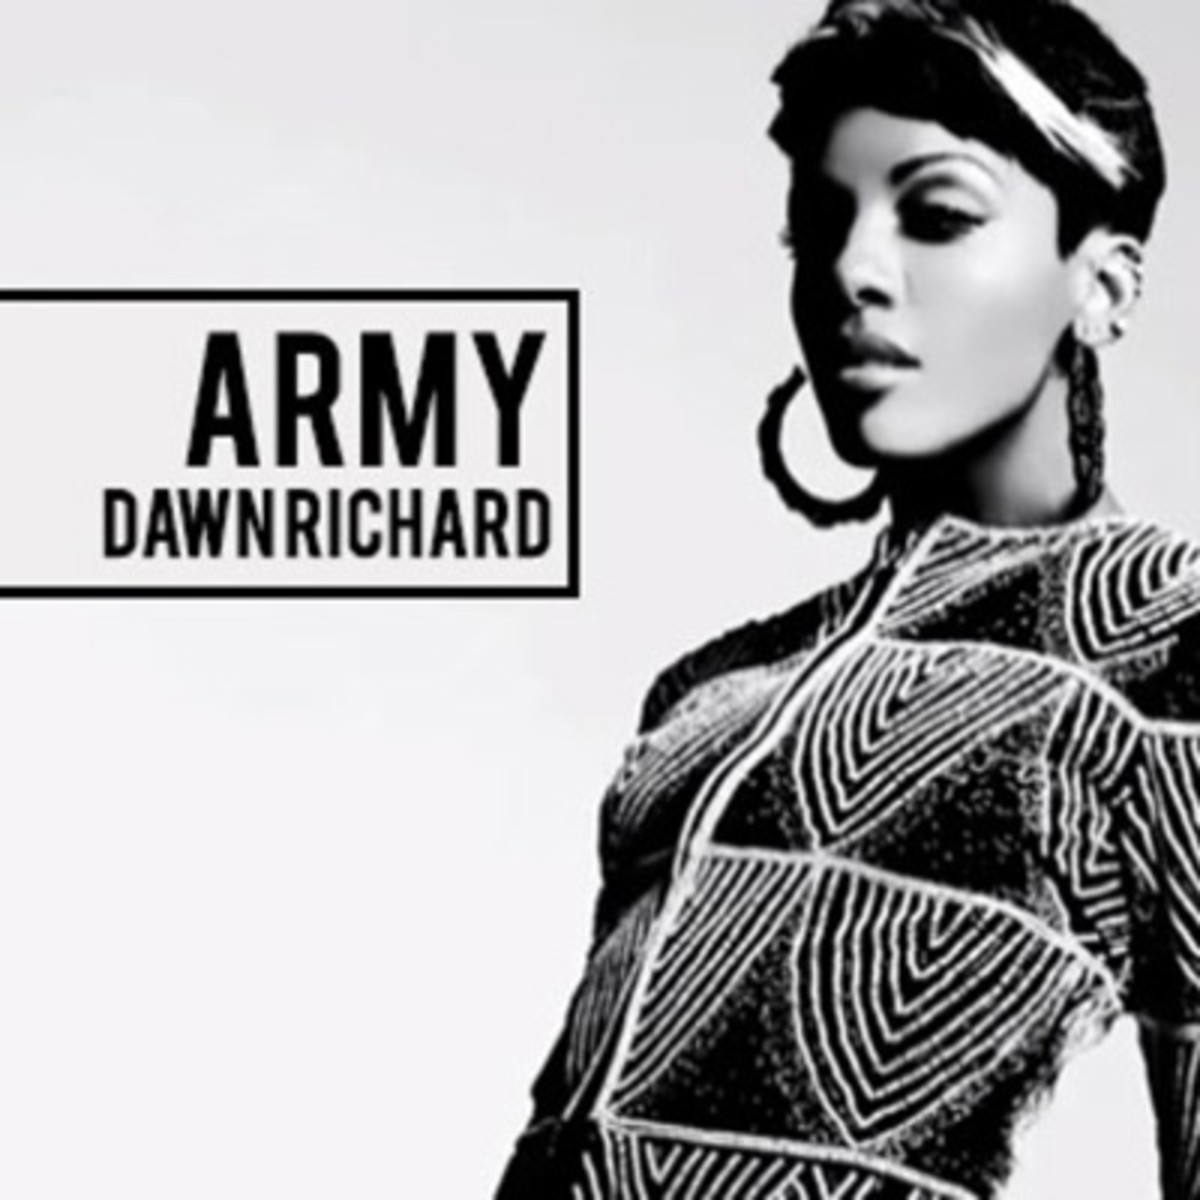 dawnrichard-army.jpg